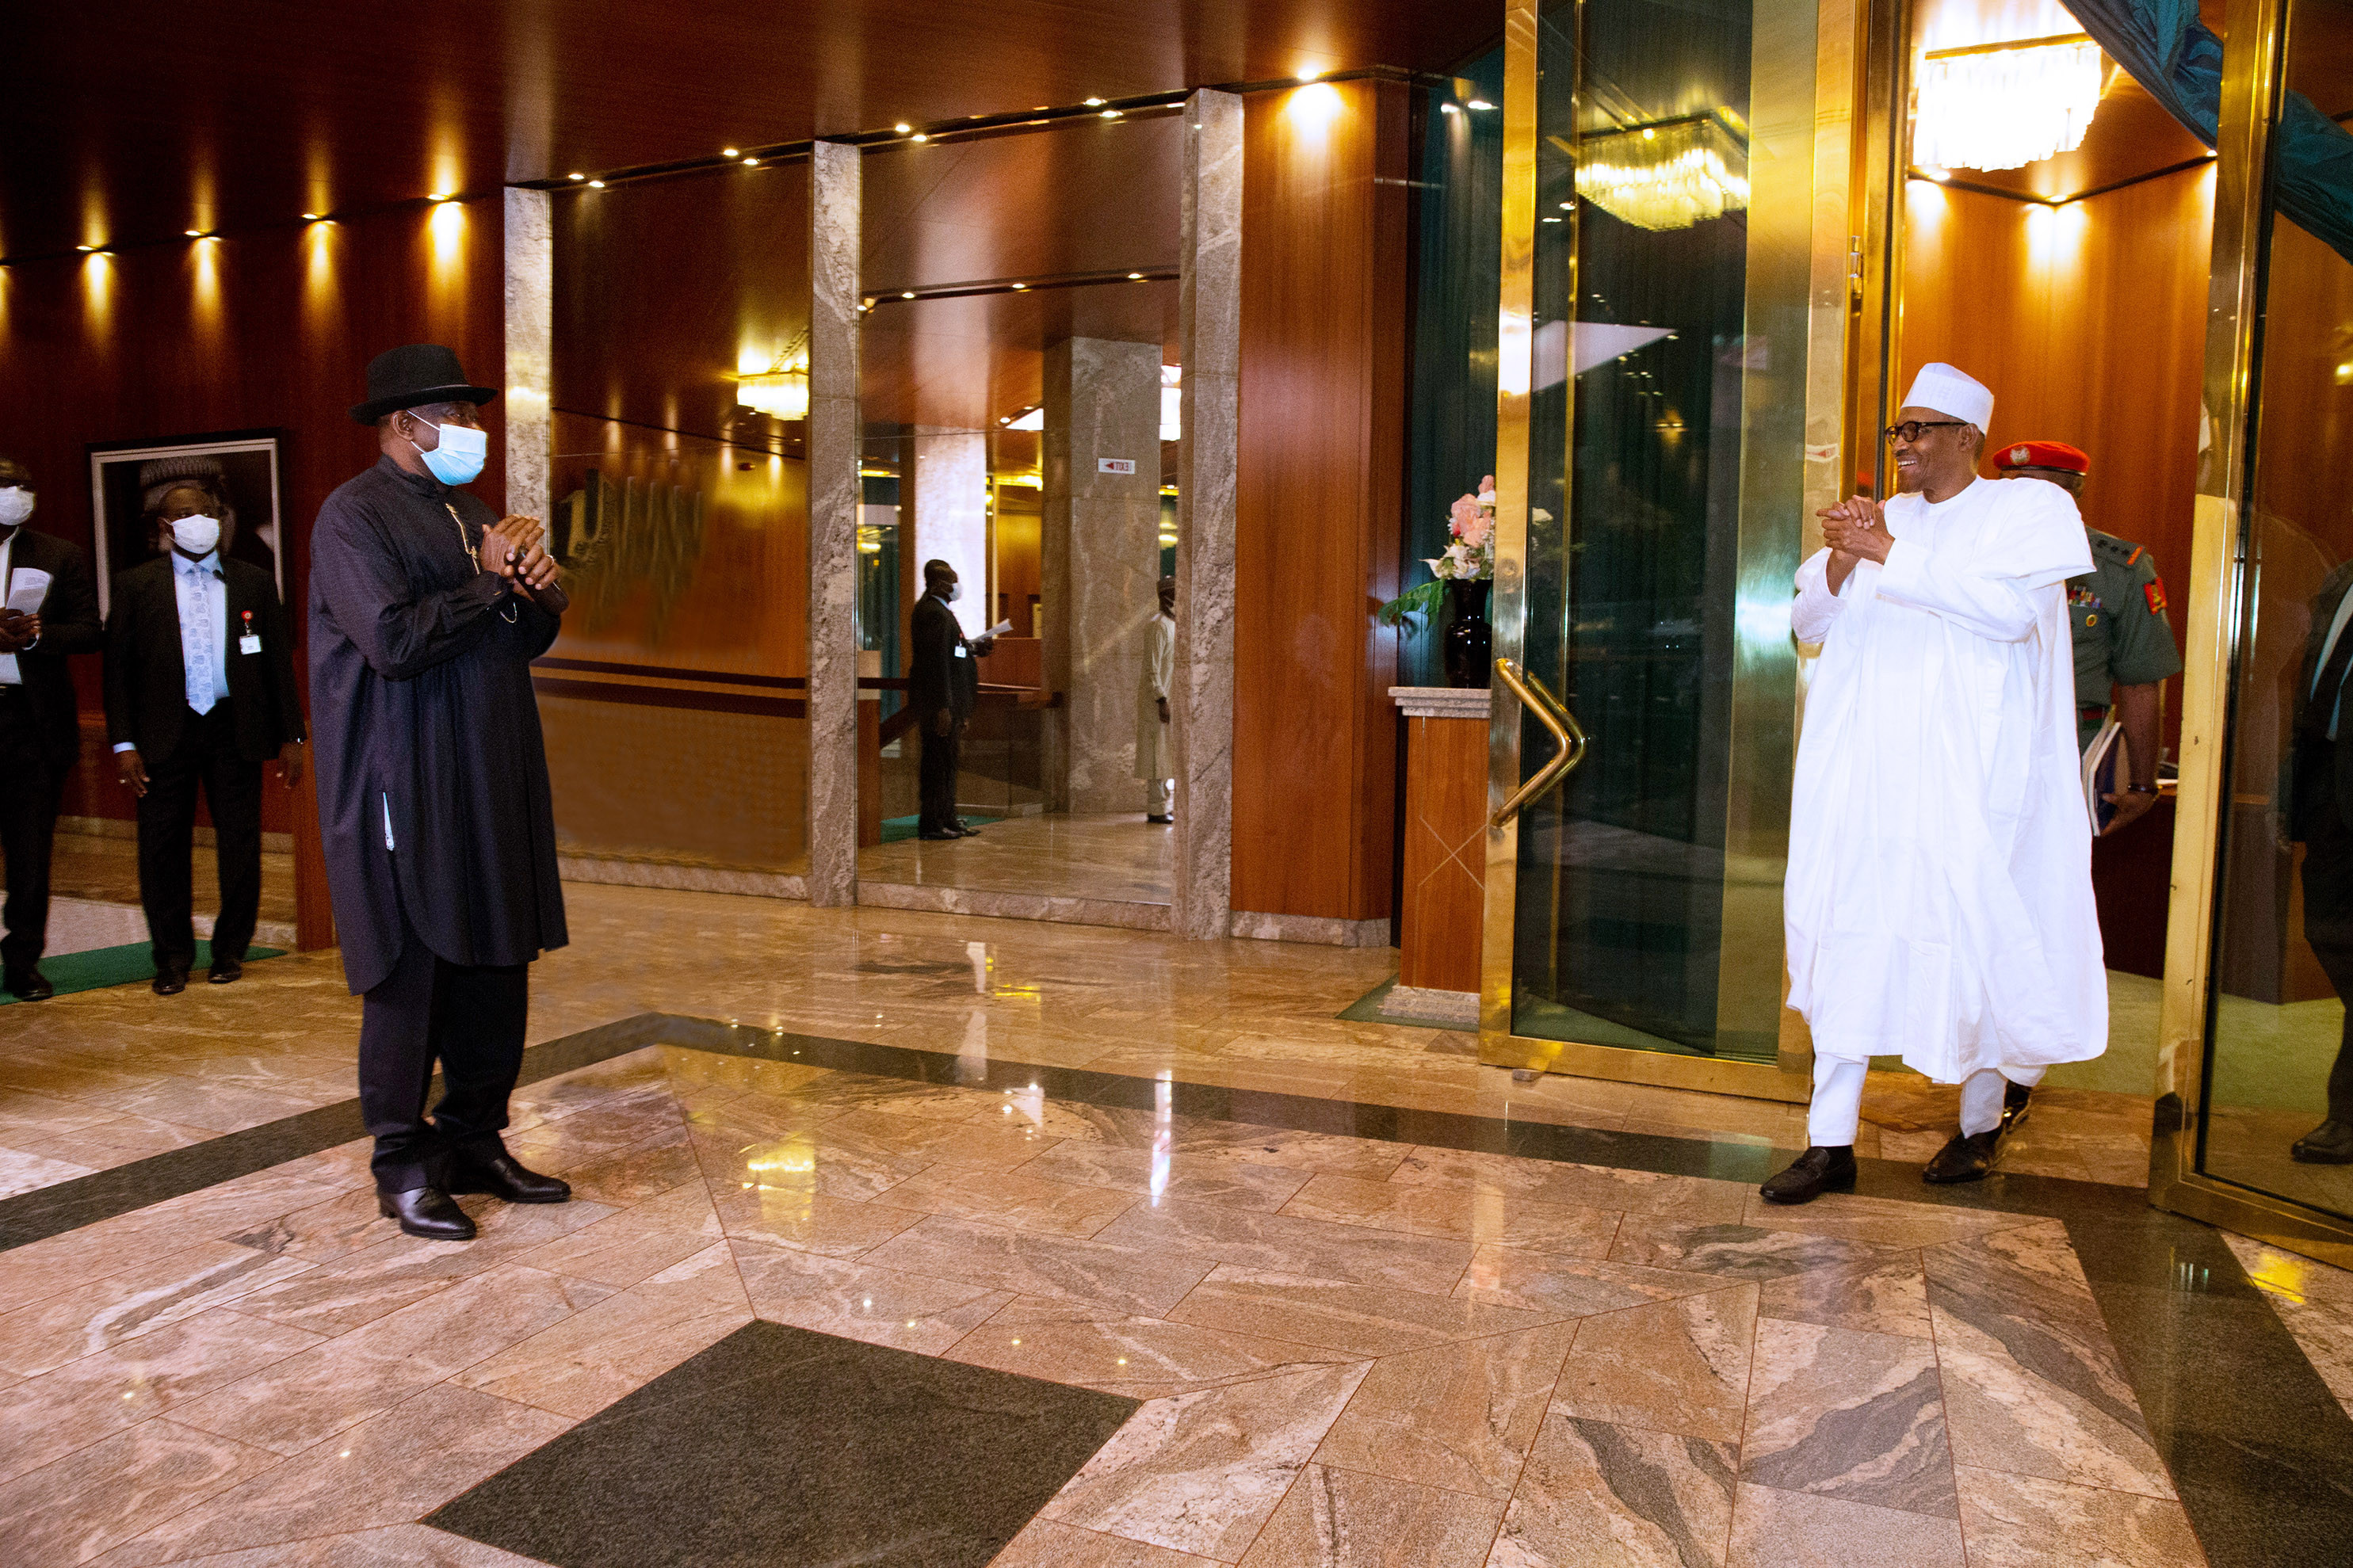 Photos of President Buhari and former president Goodluck Jonathan at the state house